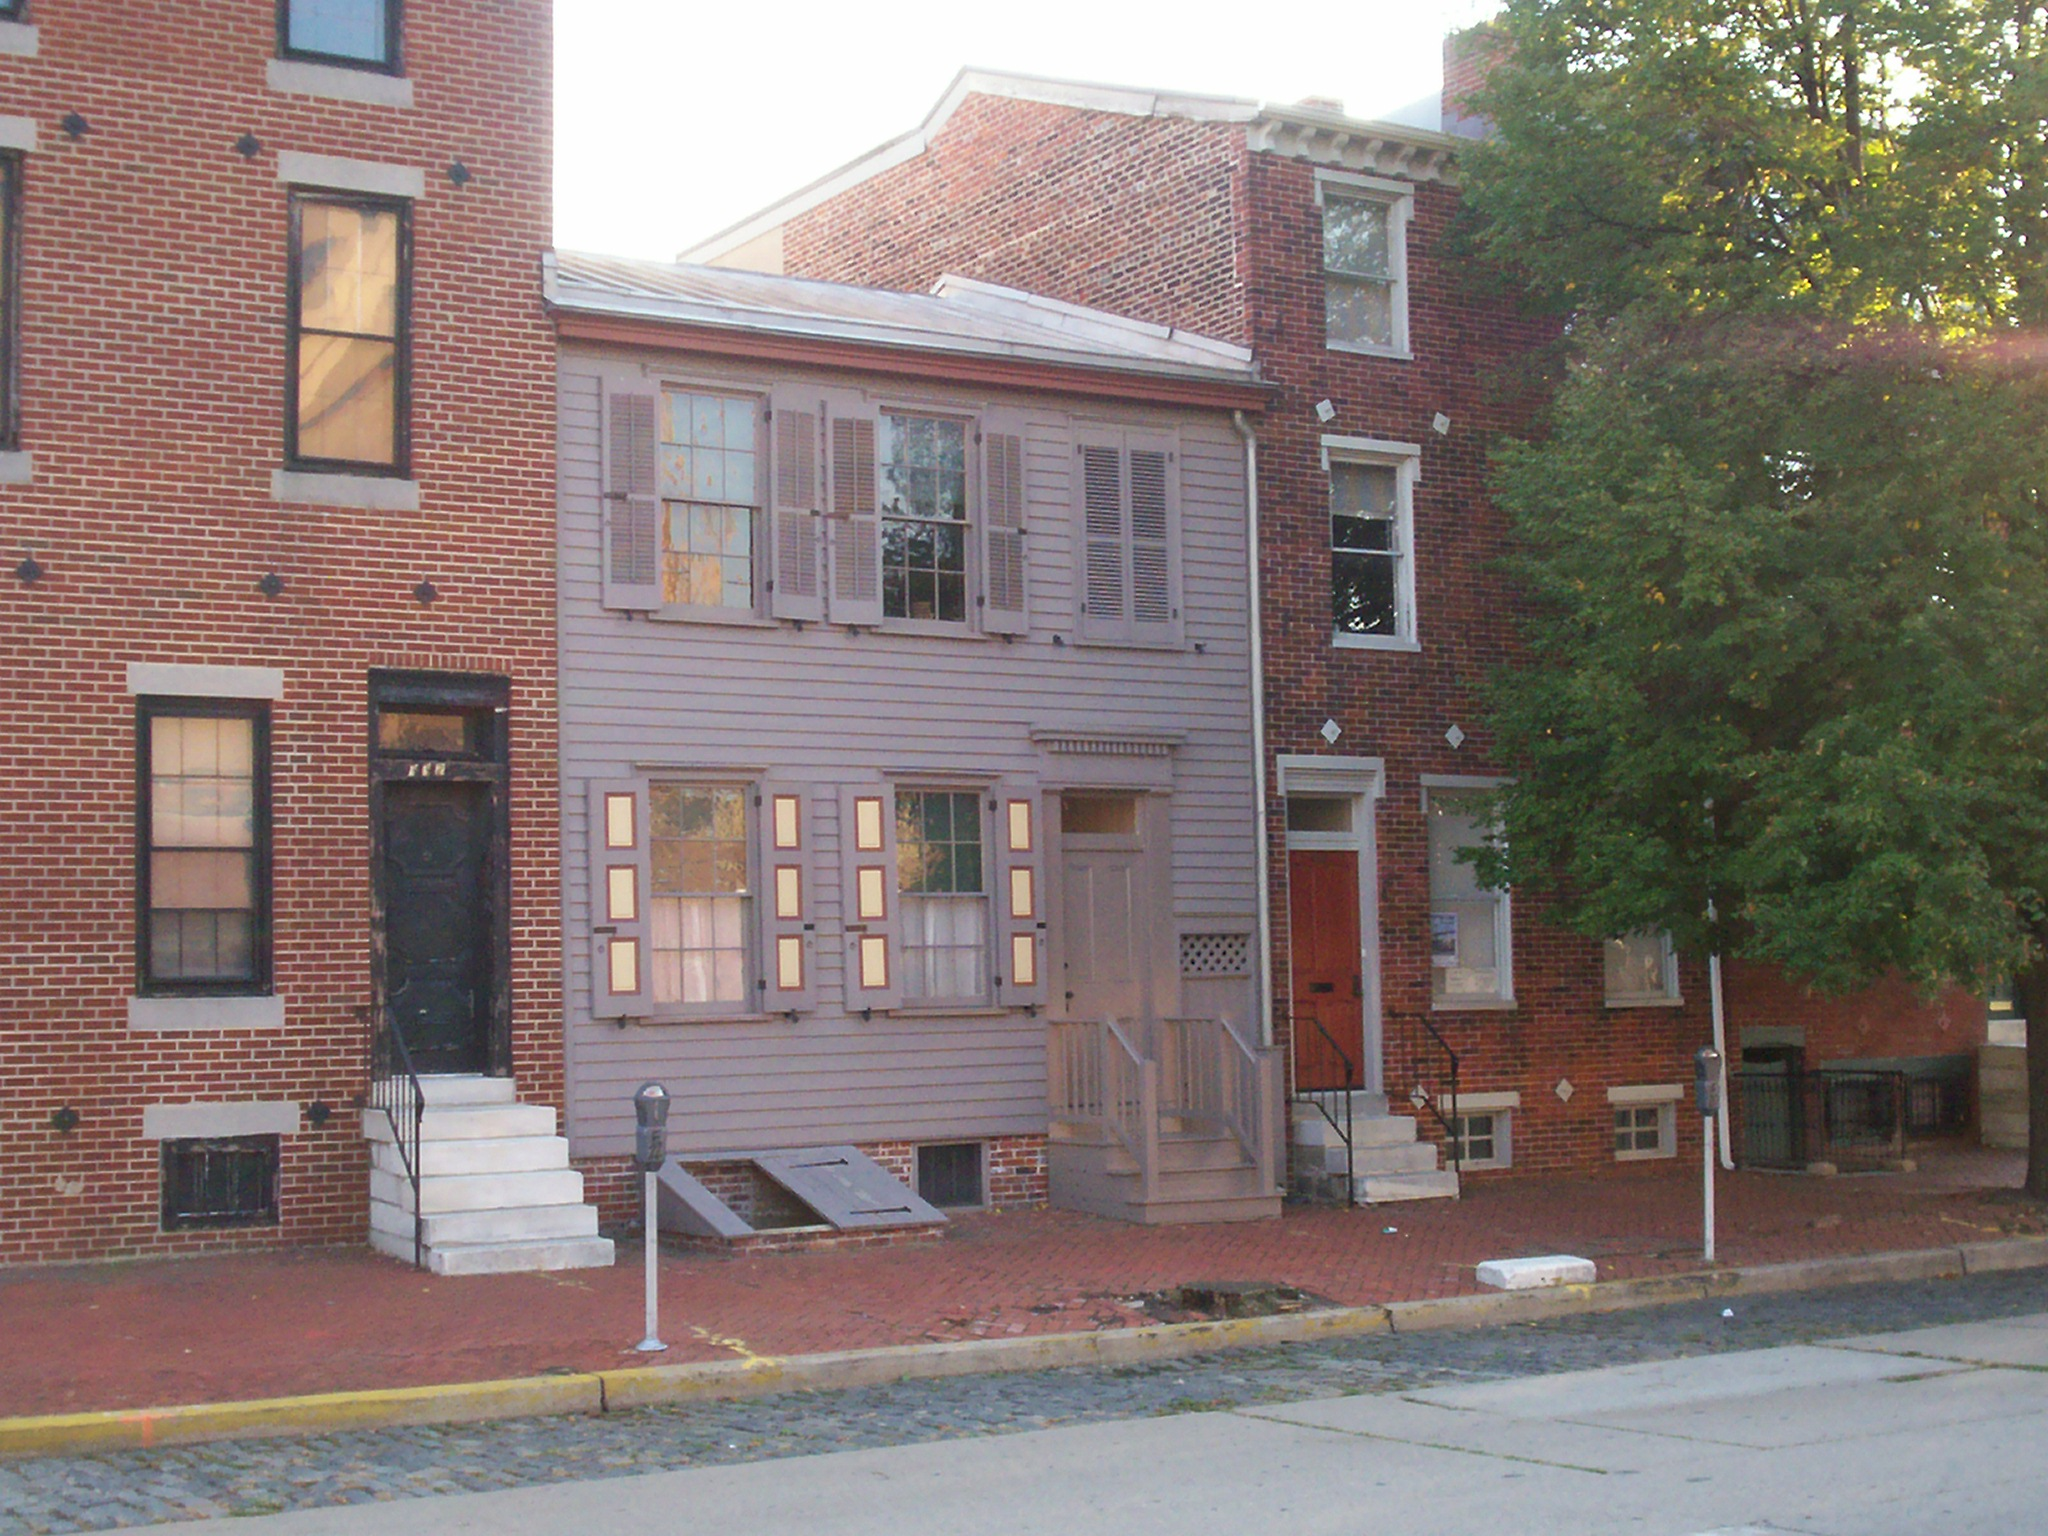 The Walt Whitman House in Camden, NJ, where Walt Whitman spent the last years of his life. Note: Whitman's House is the gray one in the middle, not made of brick. The house to the right serves as the Visitors Center. Photo taken on October 13, 2007.